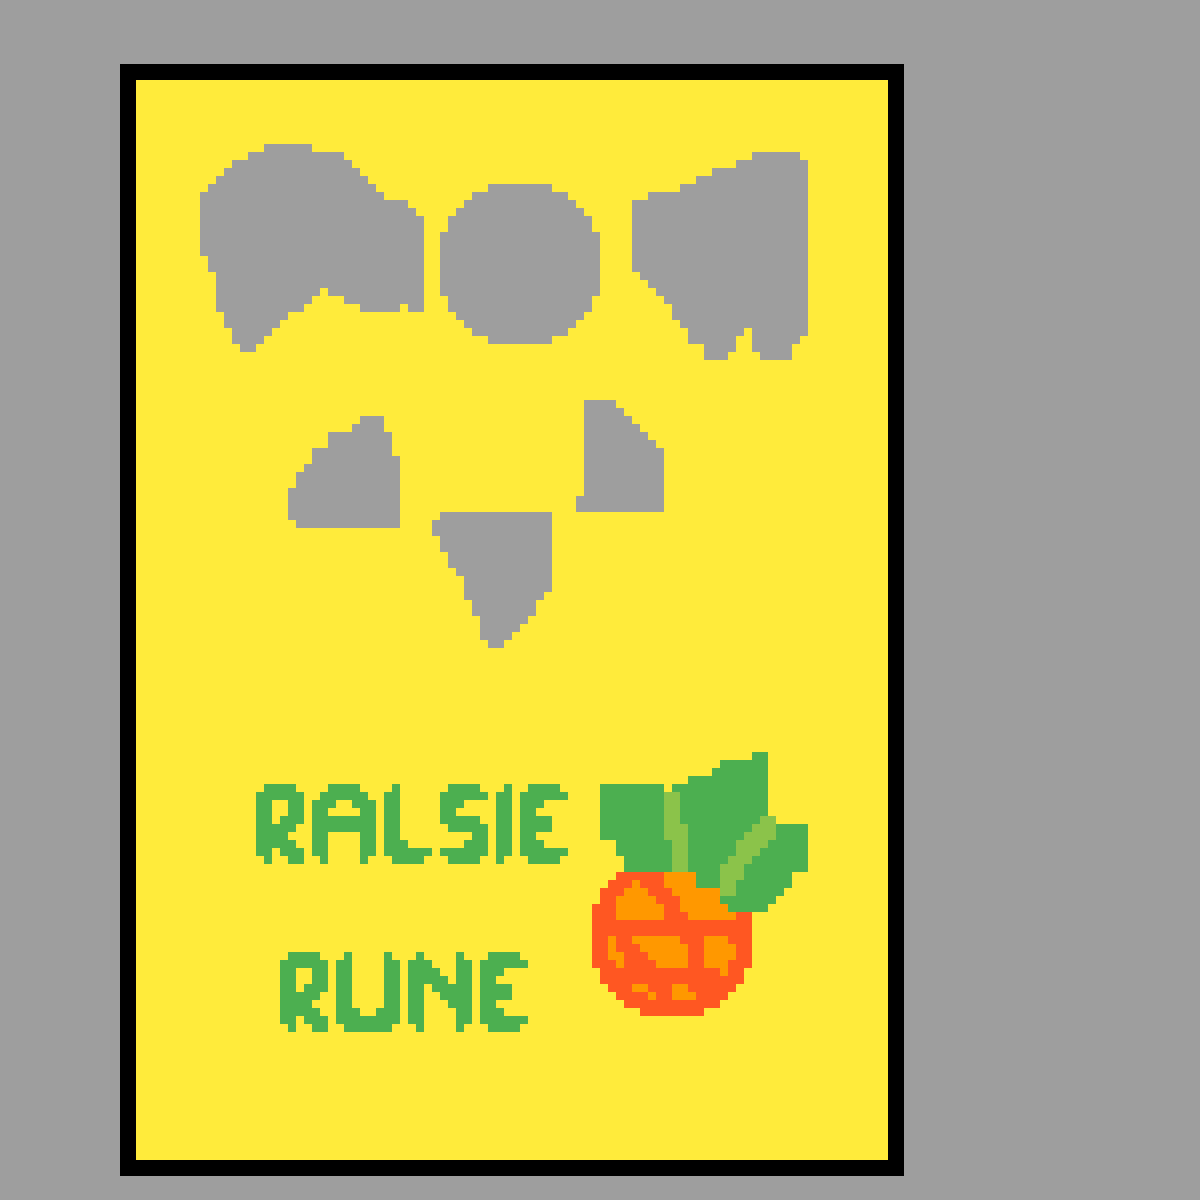 Here is the request 4 the Ralsie rune banner by draw-with-me